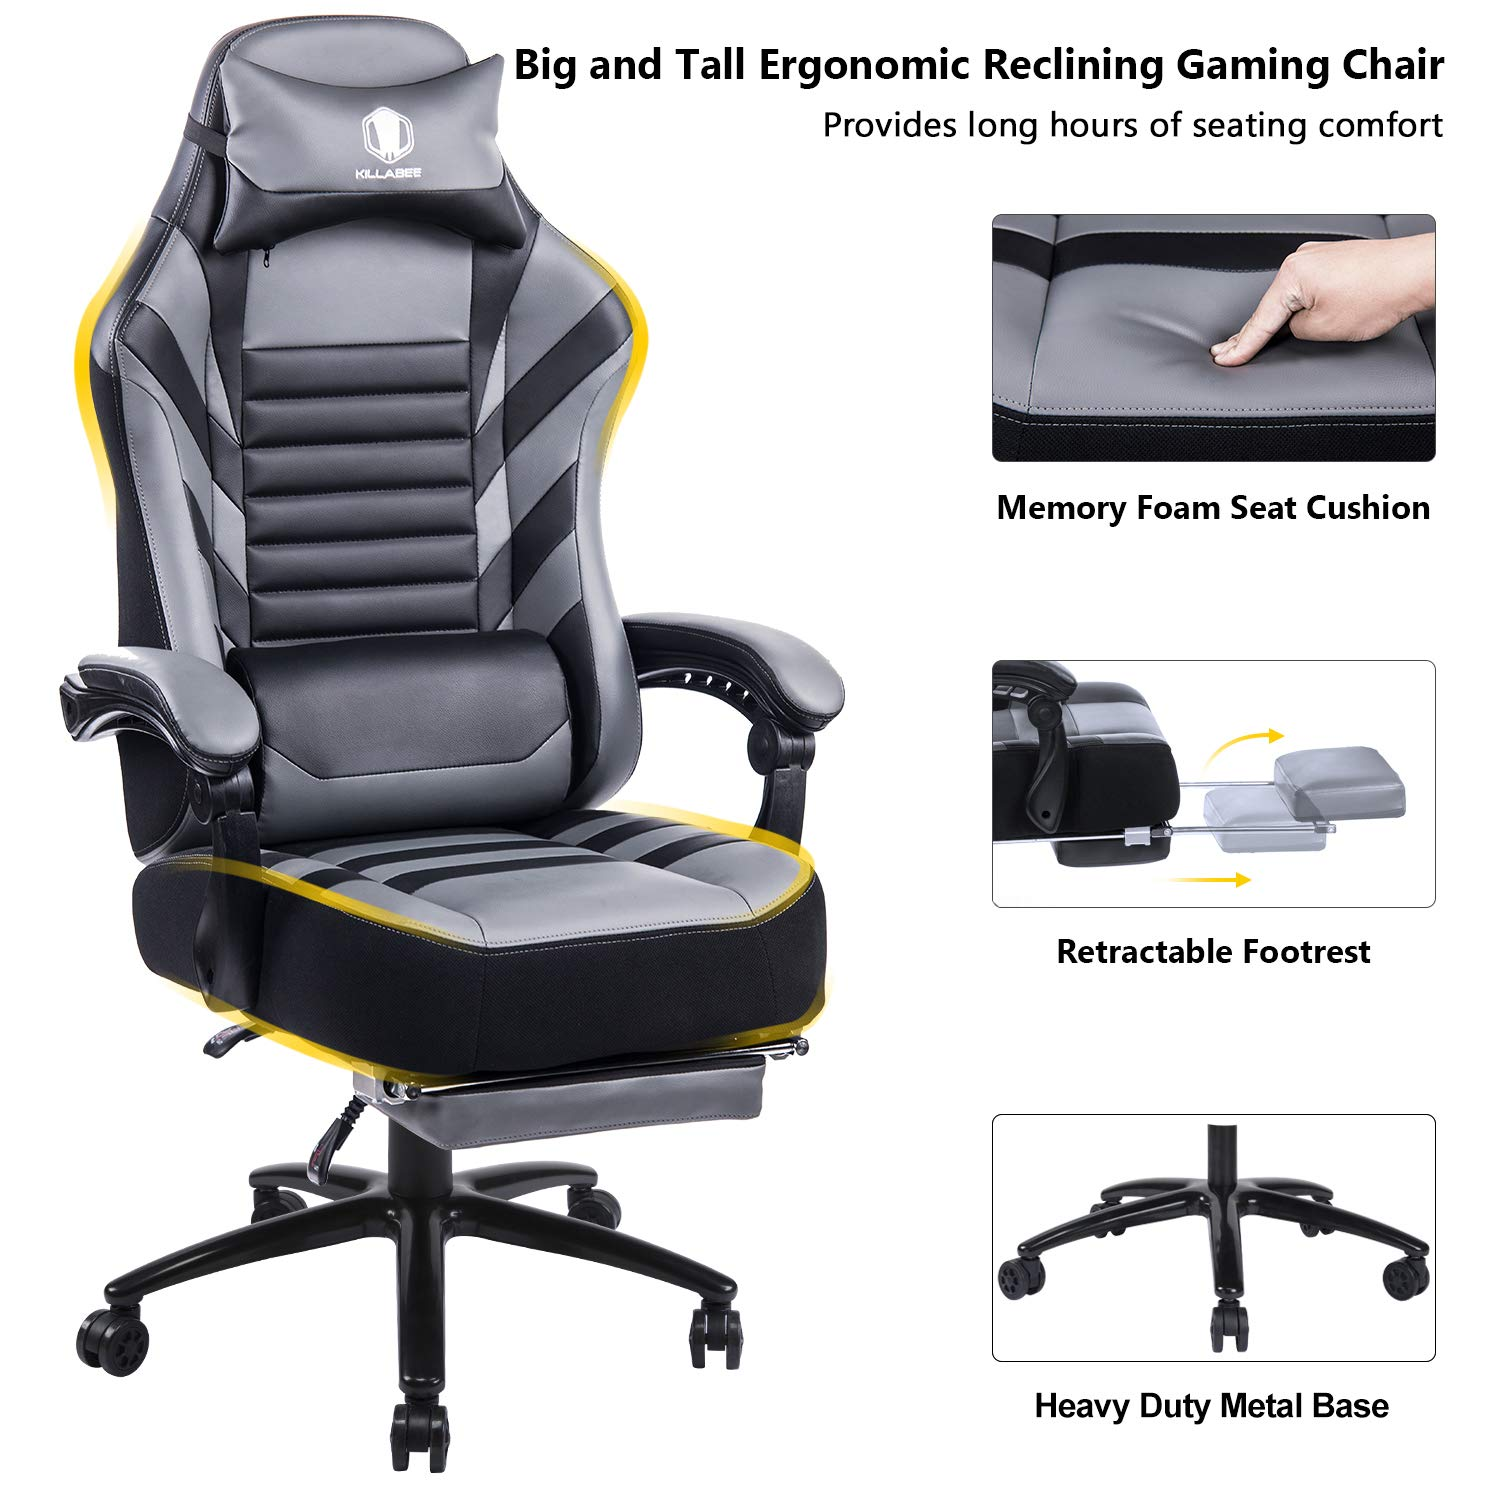 KILLABEE Big & Tall 400lb Memory Foam Reclining Gaming Chair Metal Base - Adjustable Back Angle and Retractable Footrest Ergonomic High-Back Leather Racing Executive Computer Desk Office Chair, Gray